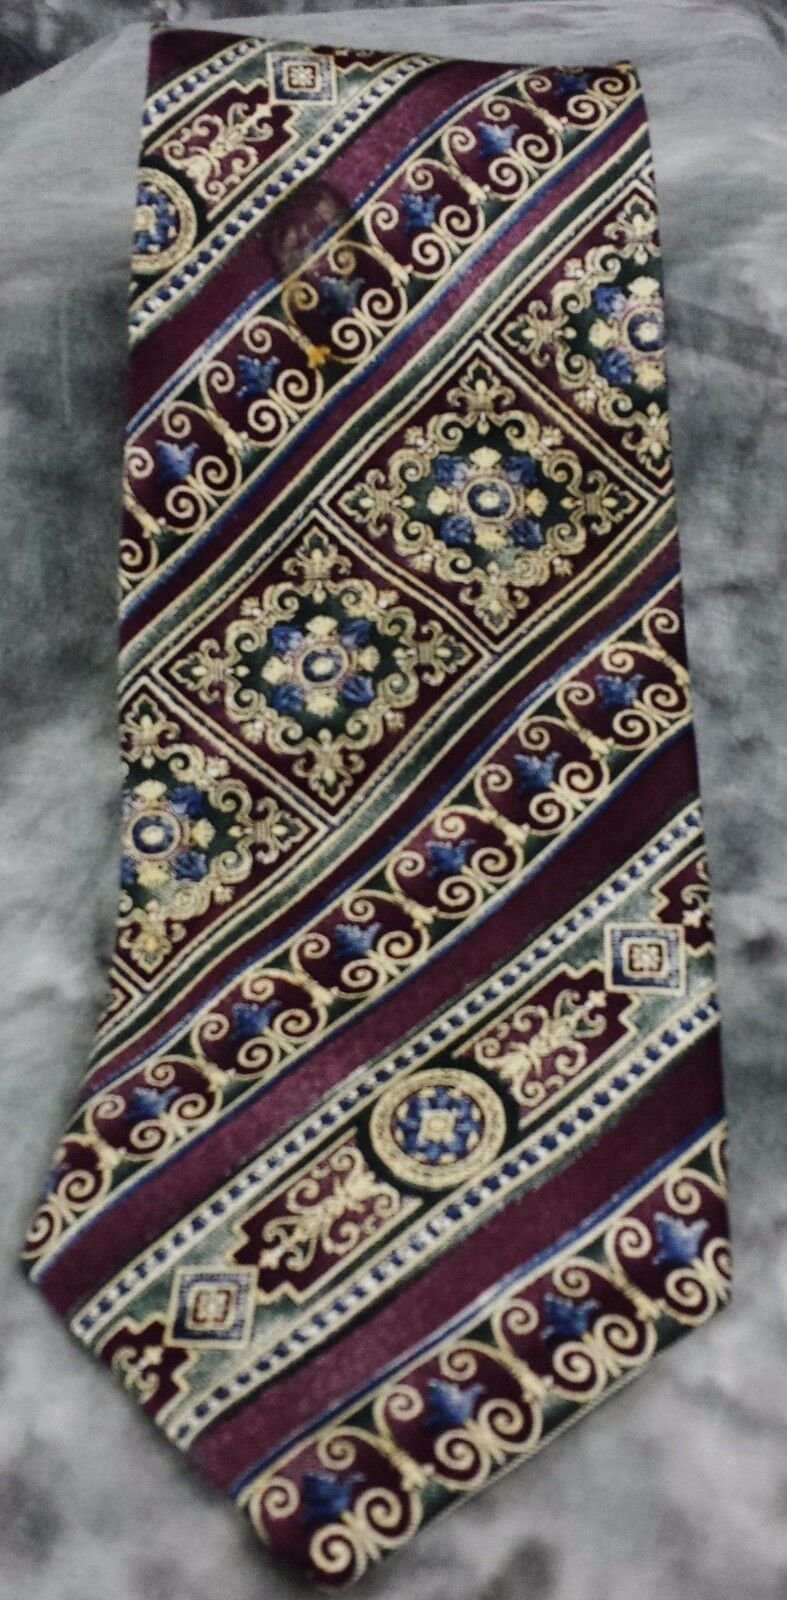 Primary image for BILL BLASS MEN'S NECKTIE 100% SILK WPURPLE BLUE AND IVORY DESIGN